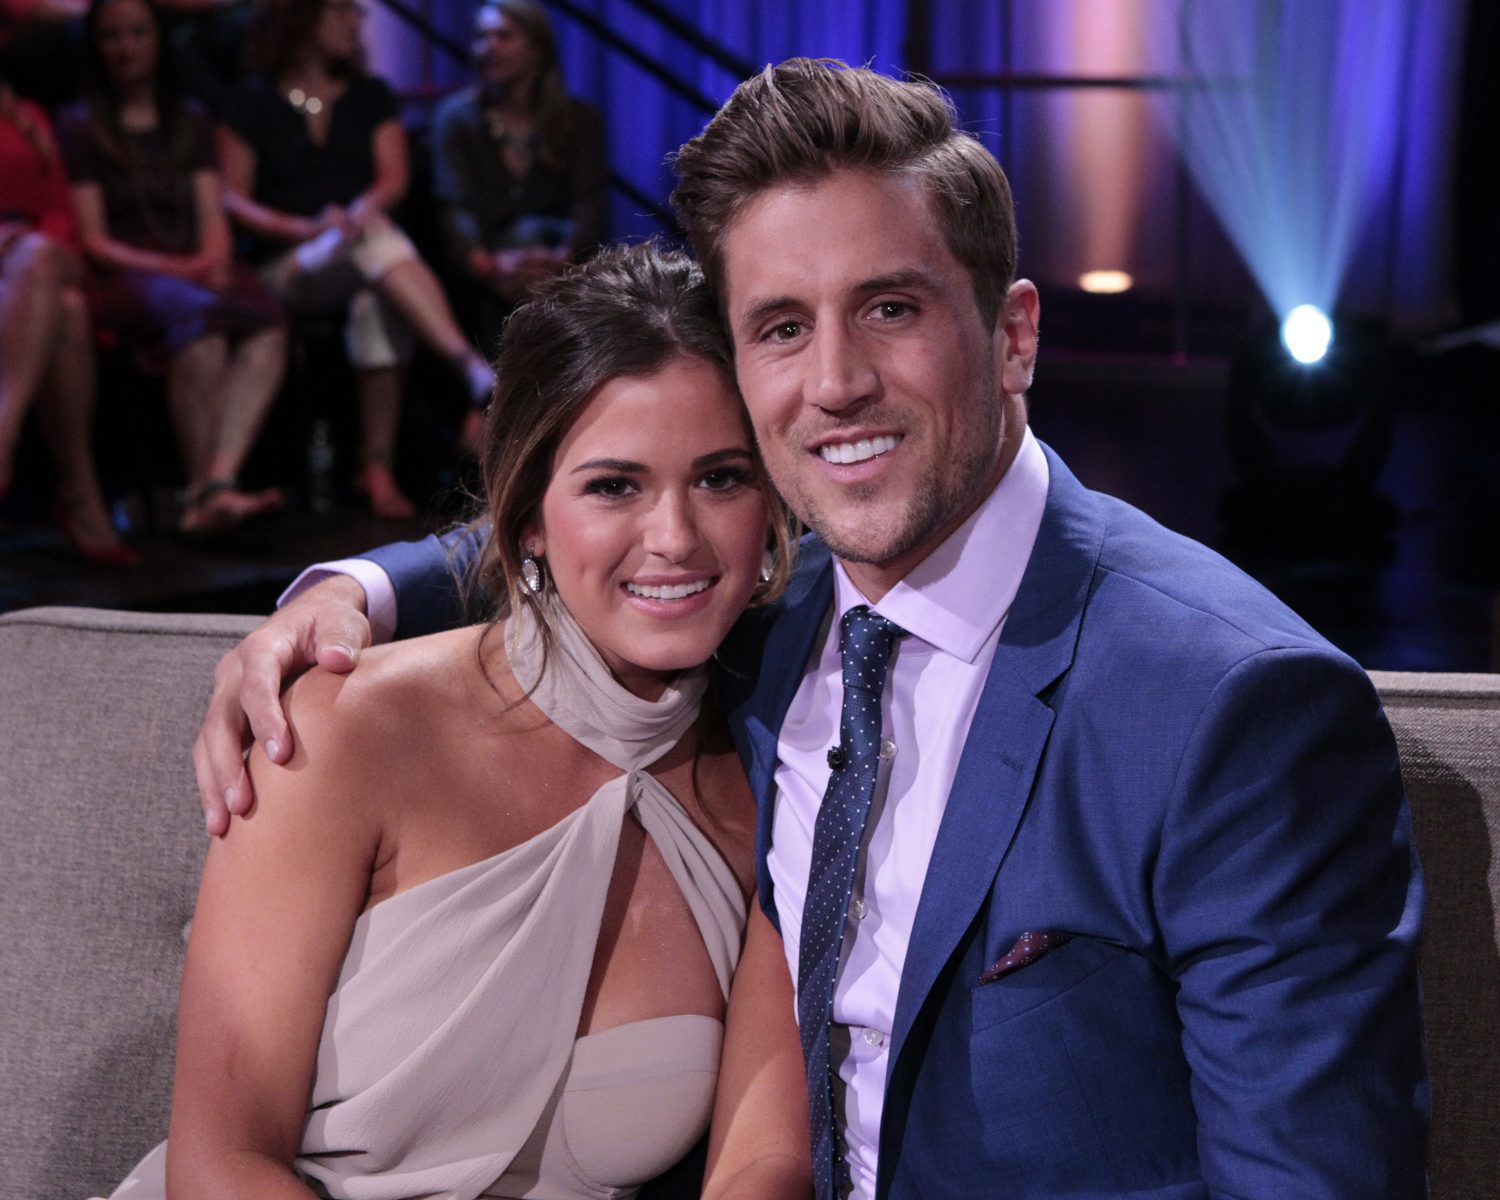 Bachelorette JoJo Fletcher Fiance Jordan Rodgers Have Officially Moved In Together